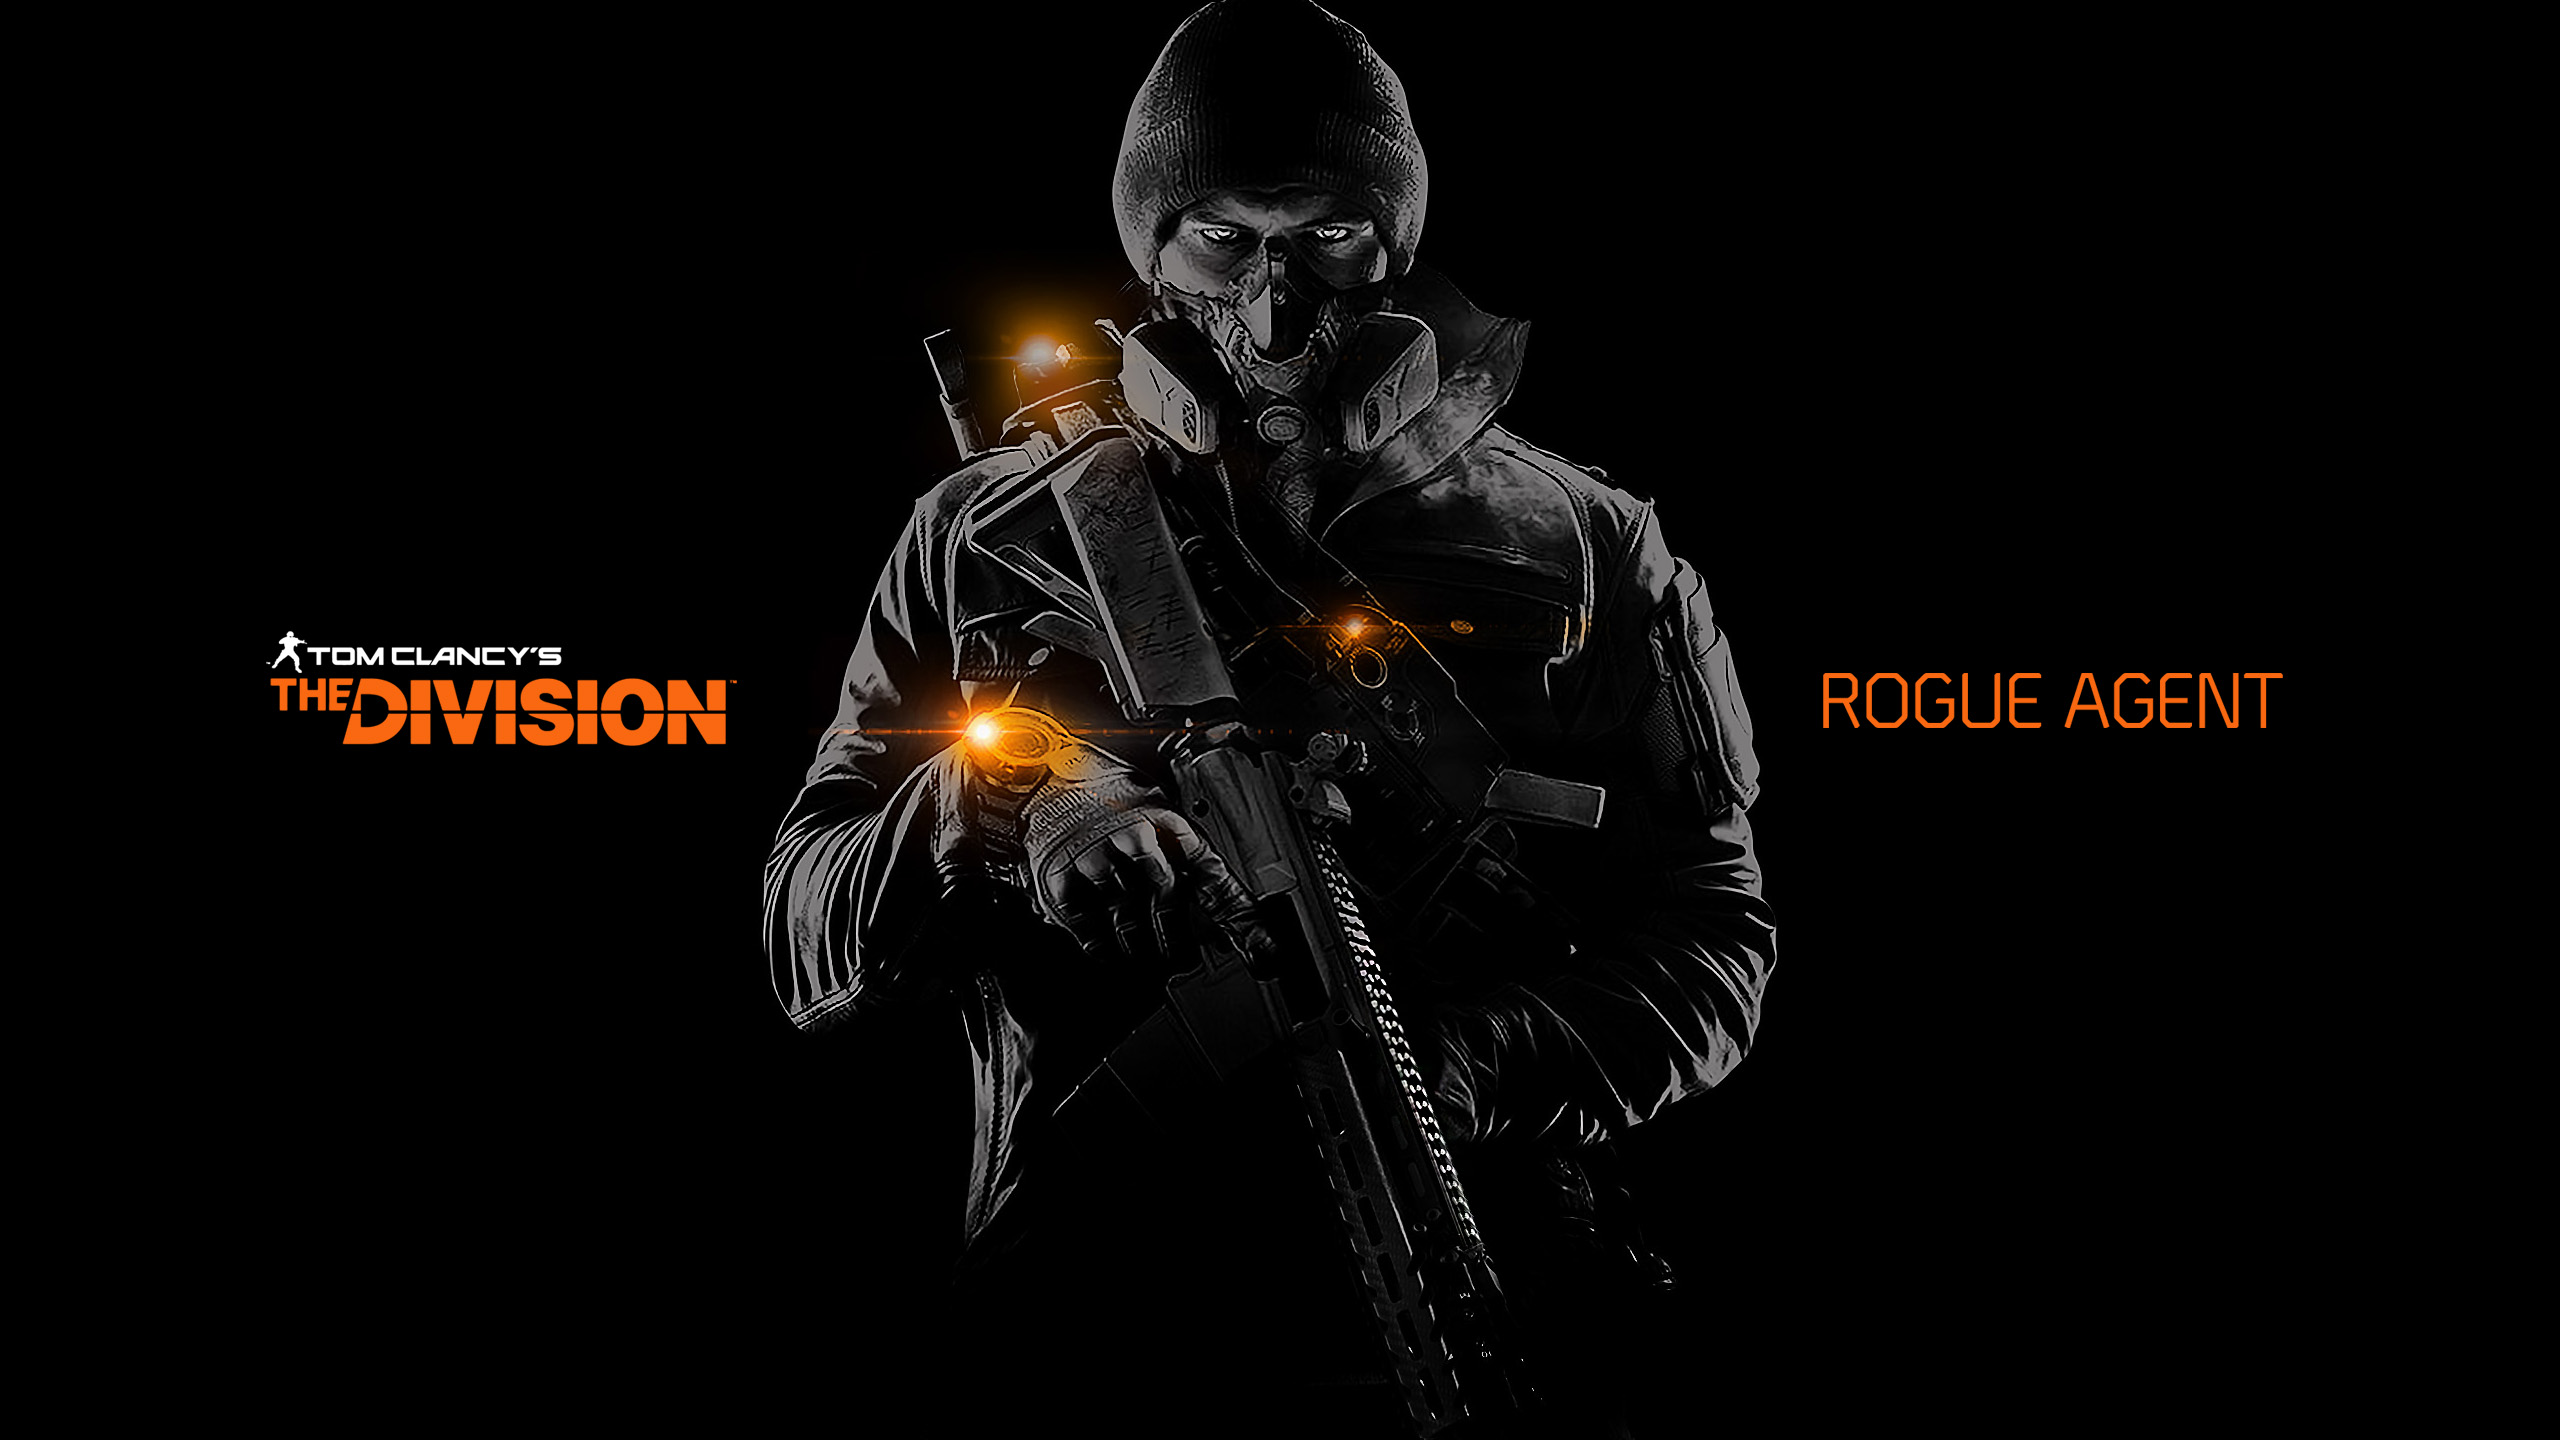 The Divison Wallpaper Tom Clancy S The Division 1920x1080